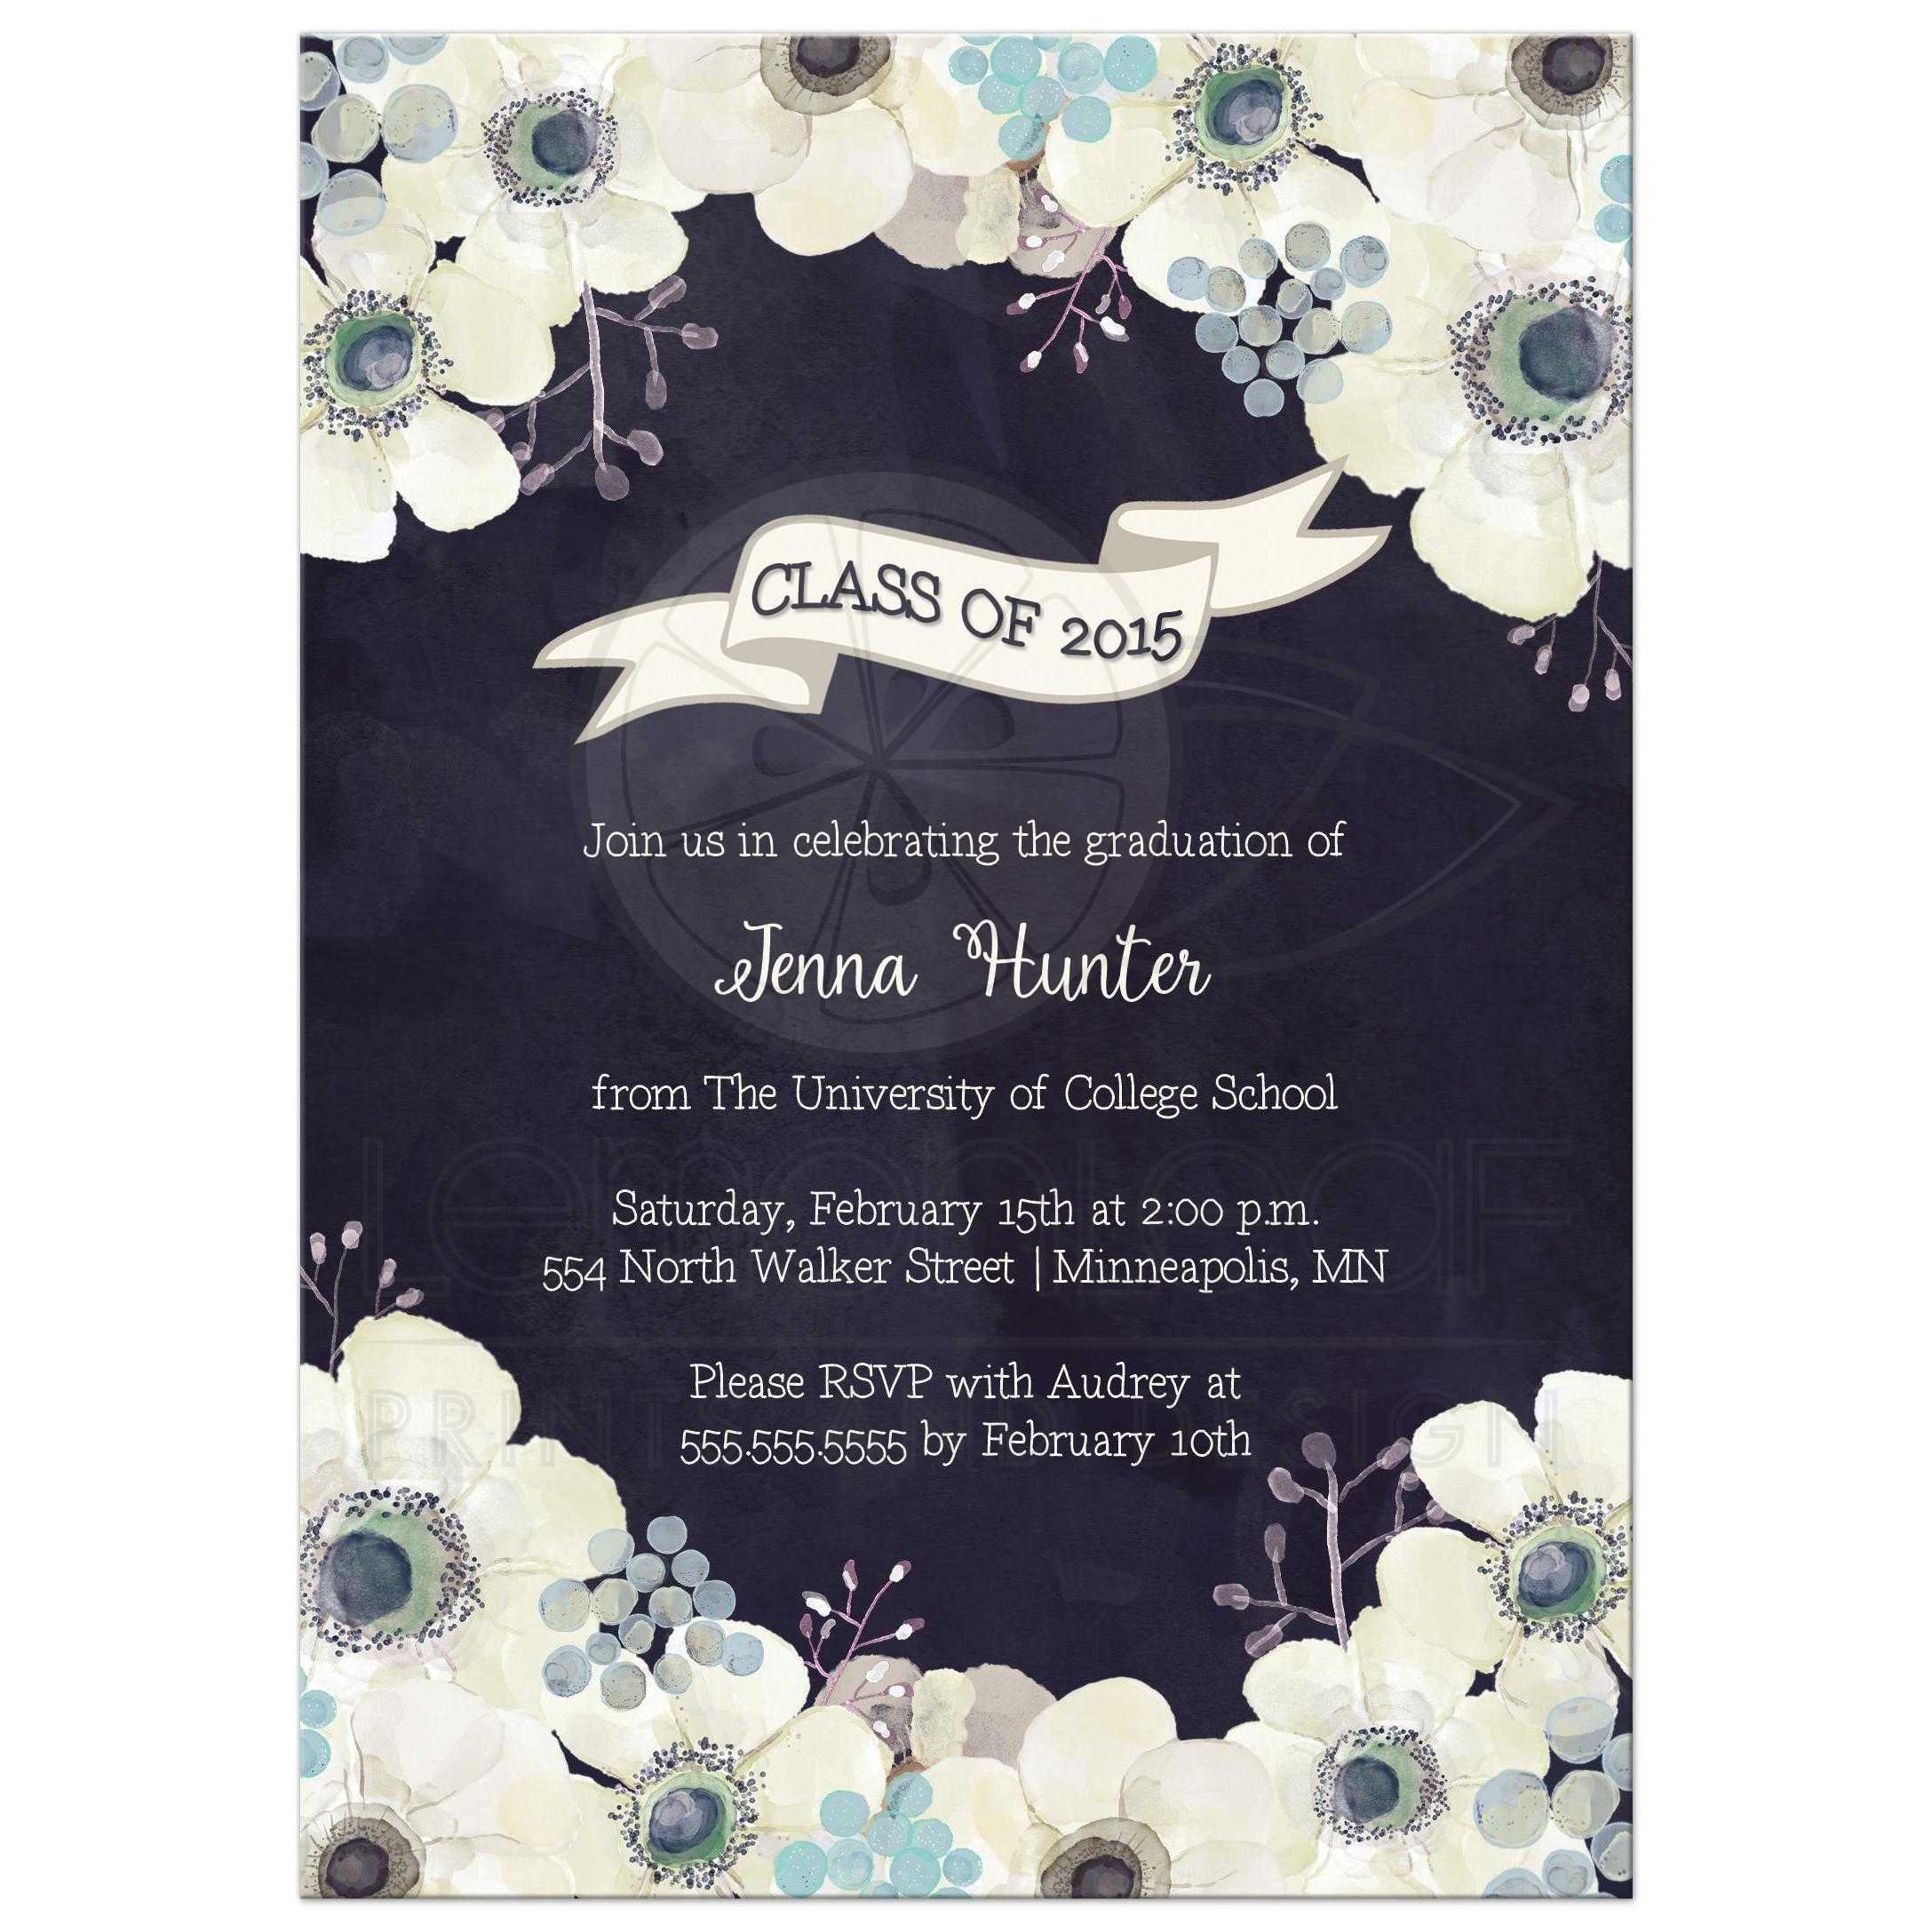 class of 2015 graduation invitation midnight blue anemone floral